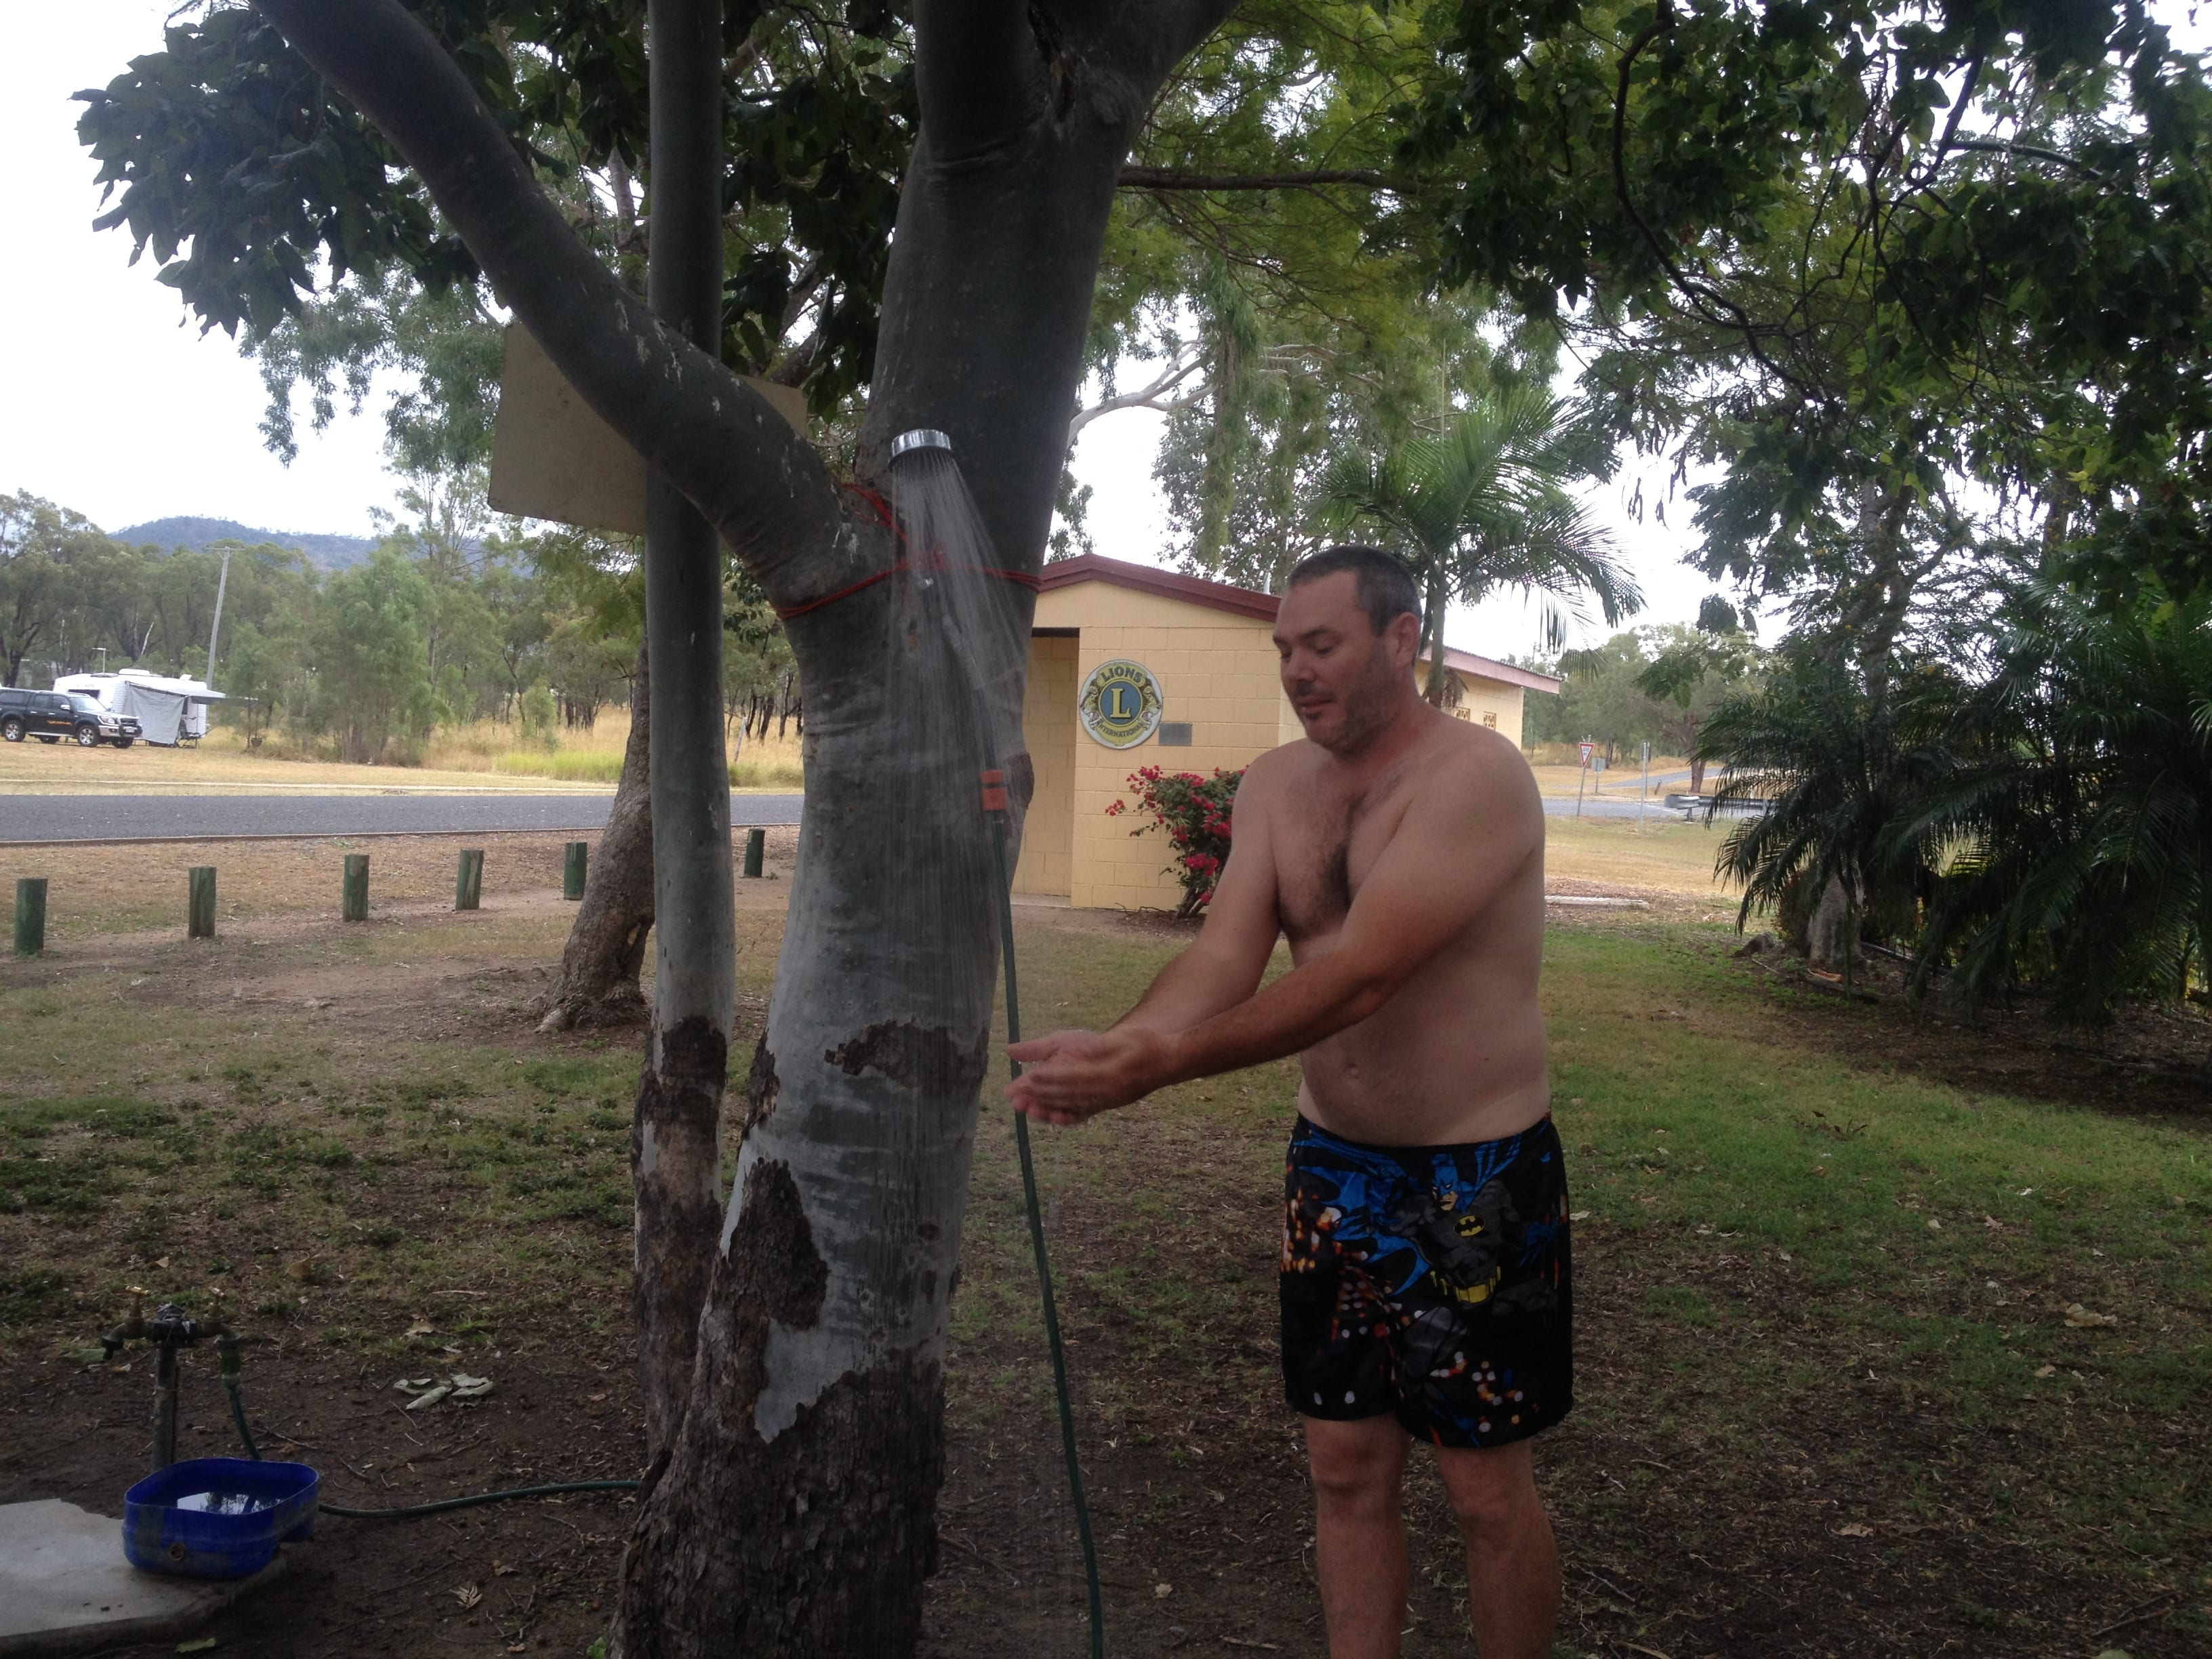 A shower hanging from a tree at a free camp in Australia found with Wikicamps